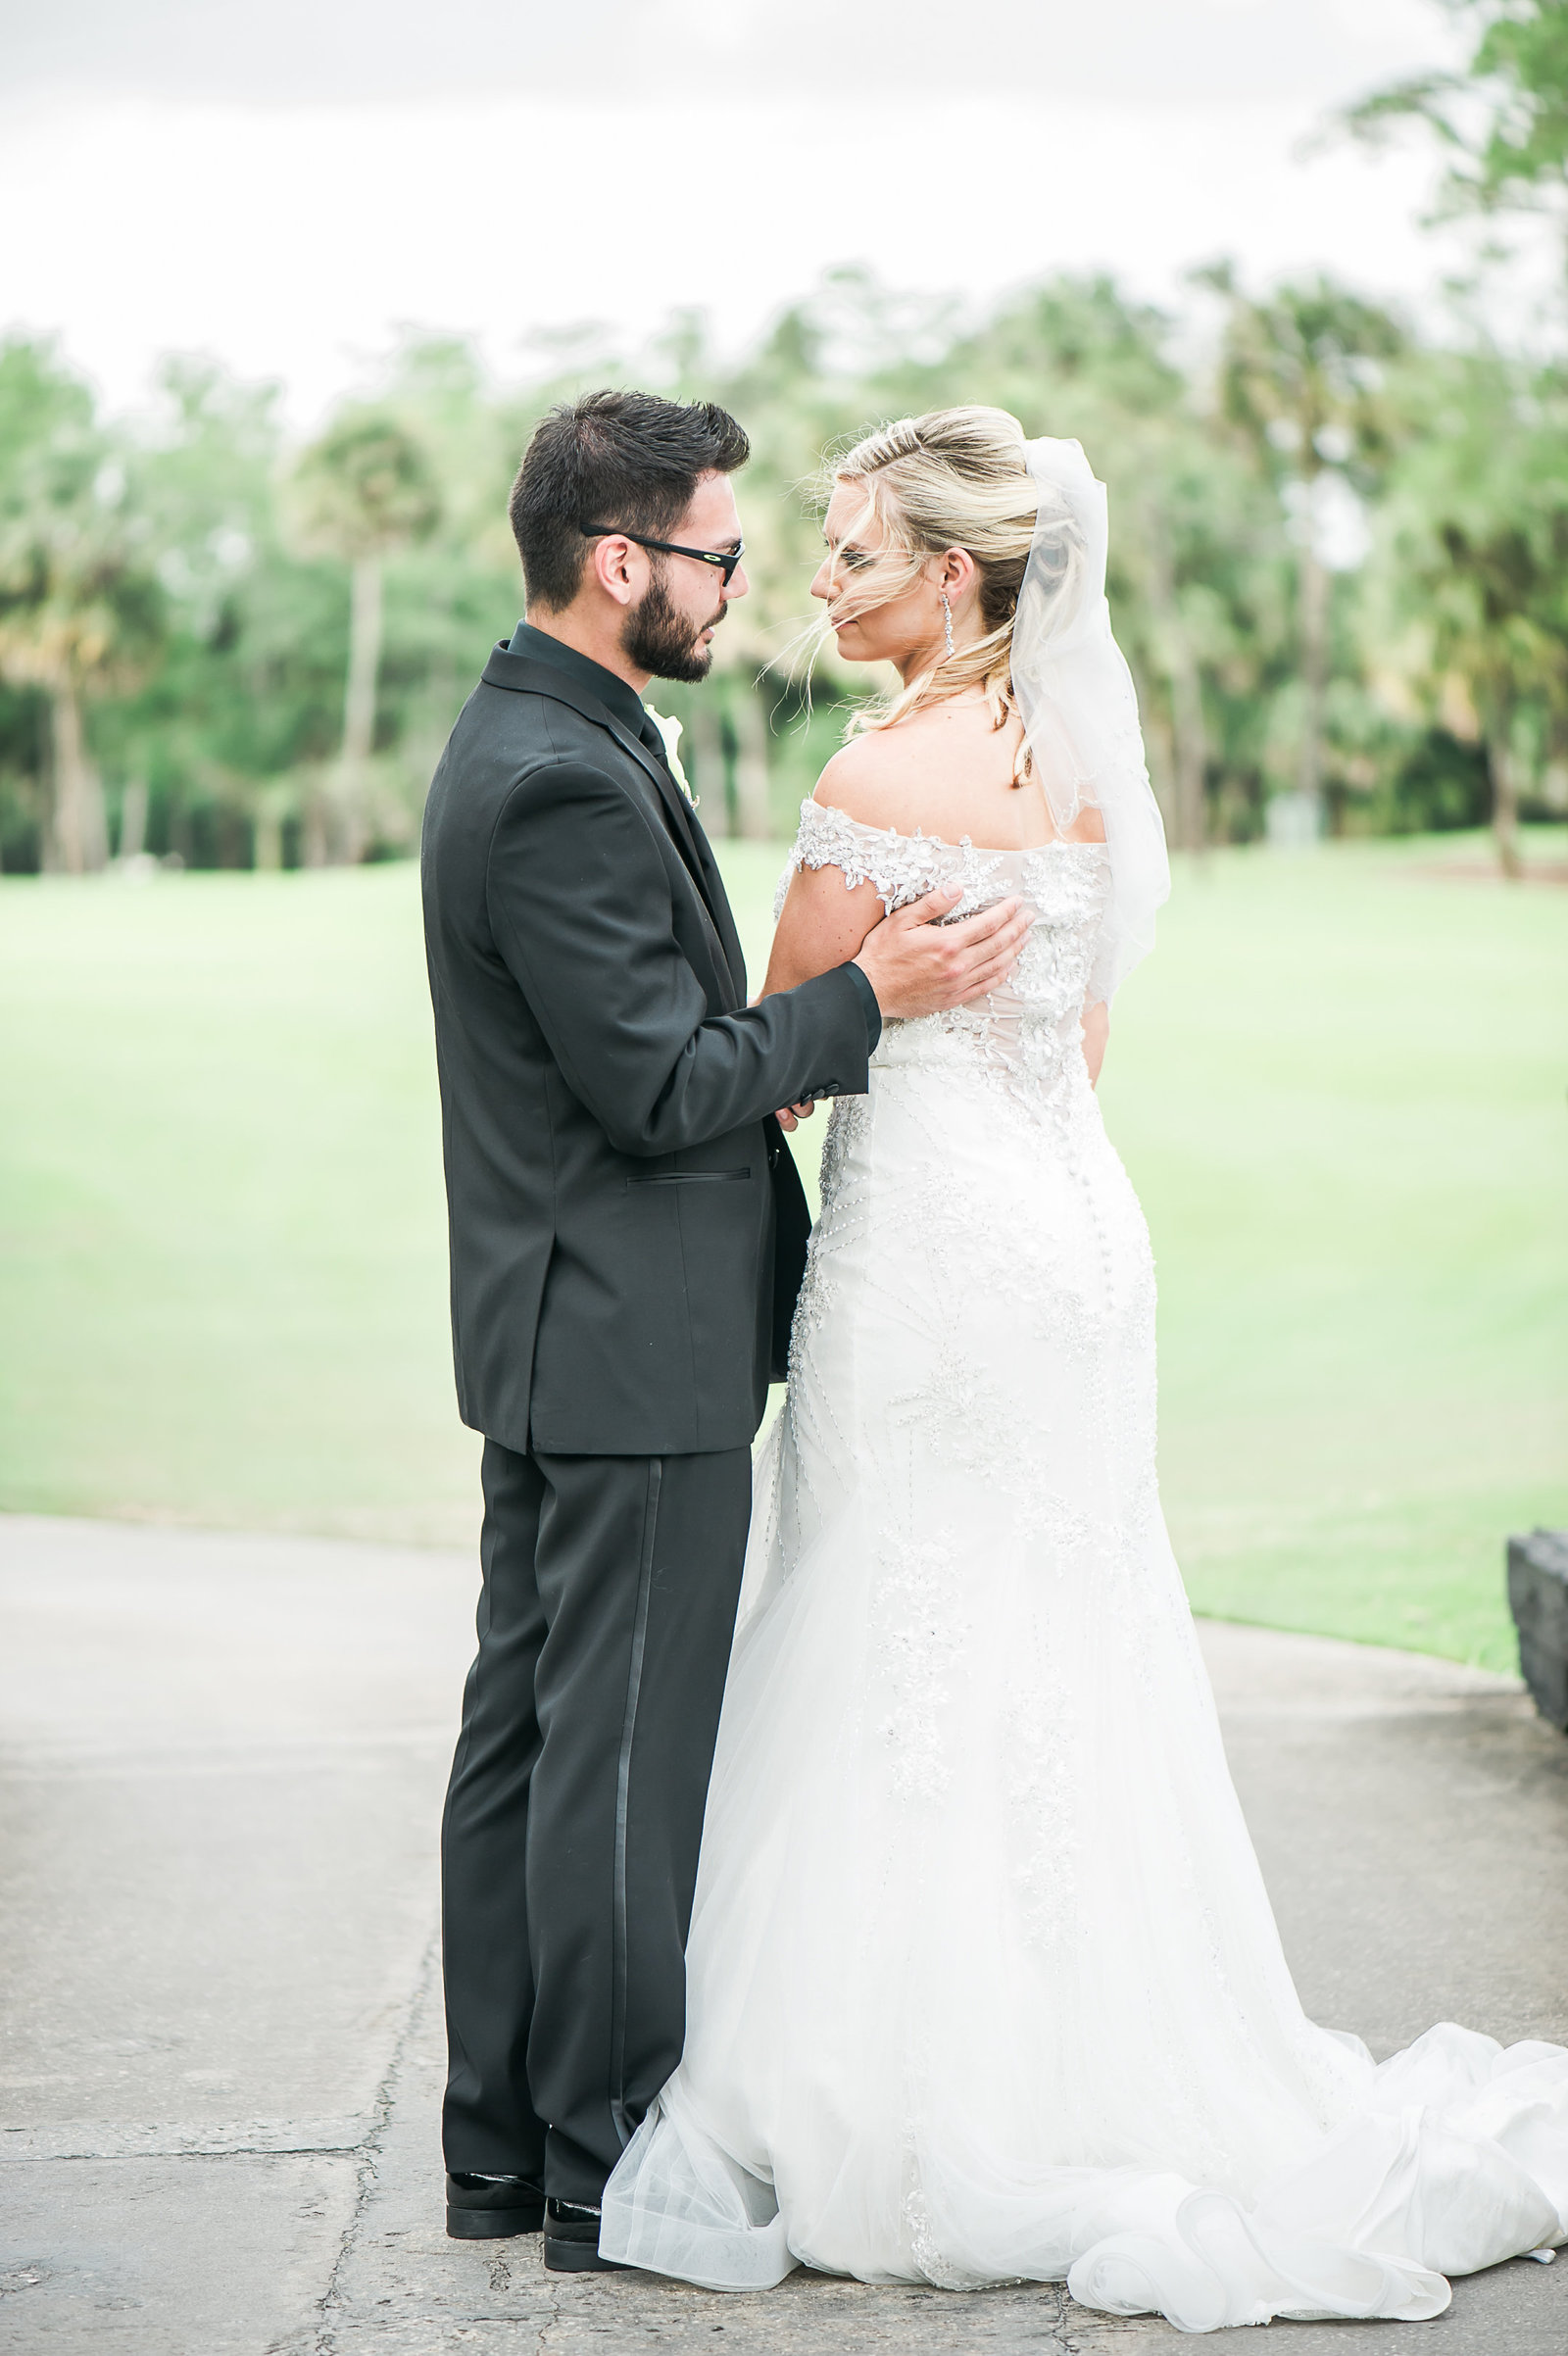 Love - Myacoo Country Club Wedding - Palm Beach Wedding Photography by Palm Beach Photography, Inc.